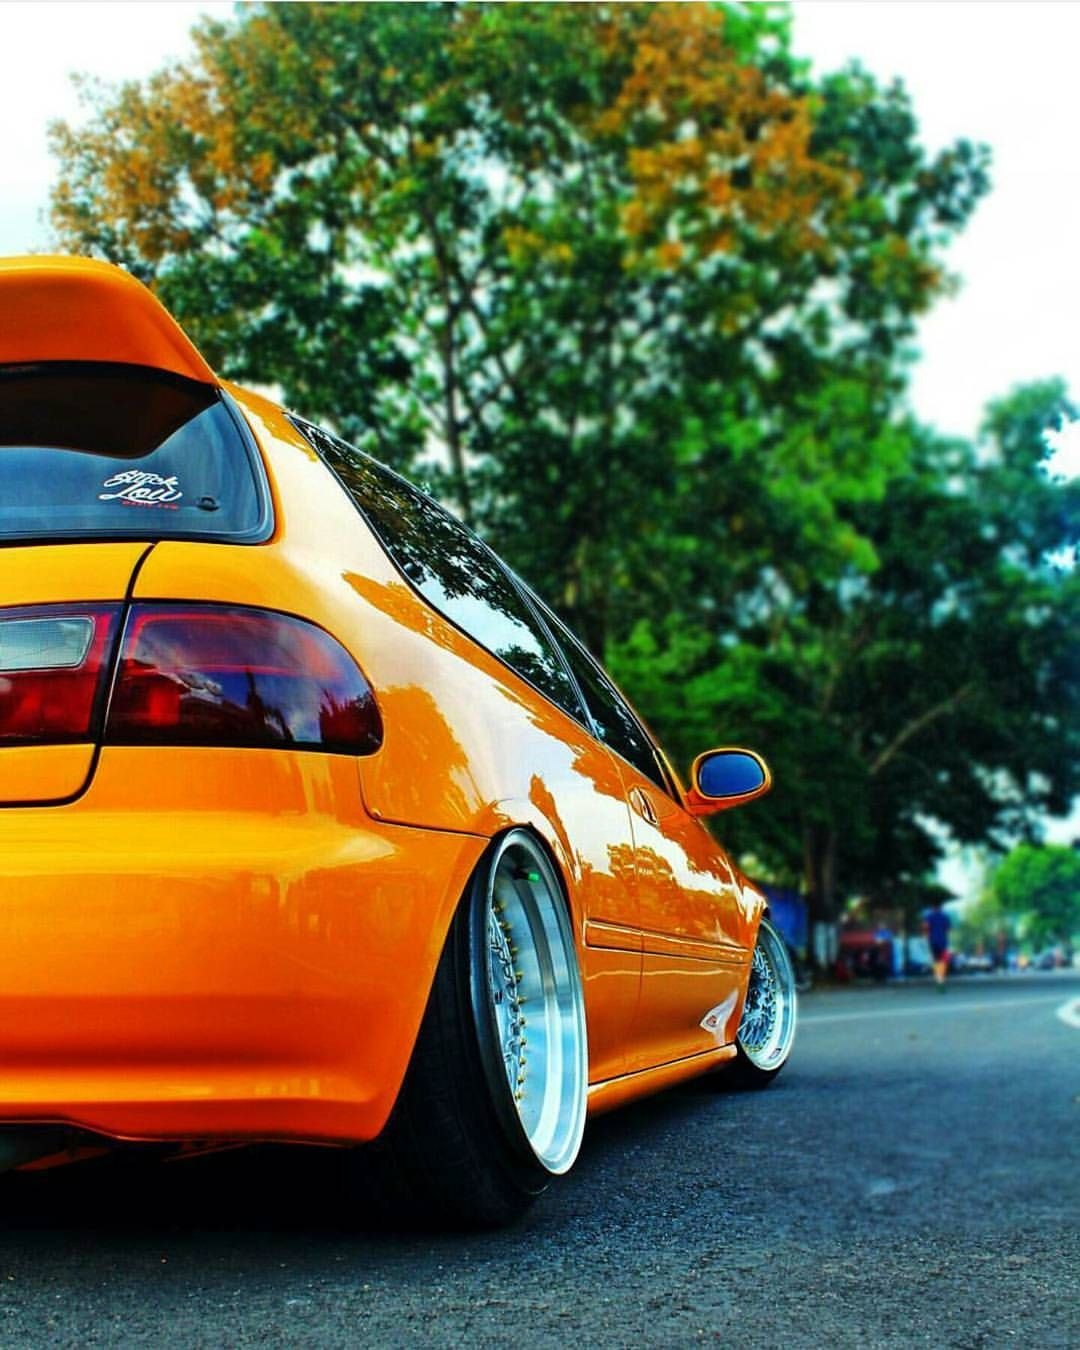 Honda City 2005 Modif : honda, modif, Civics, Ideas, Civic, Honda, Civic,